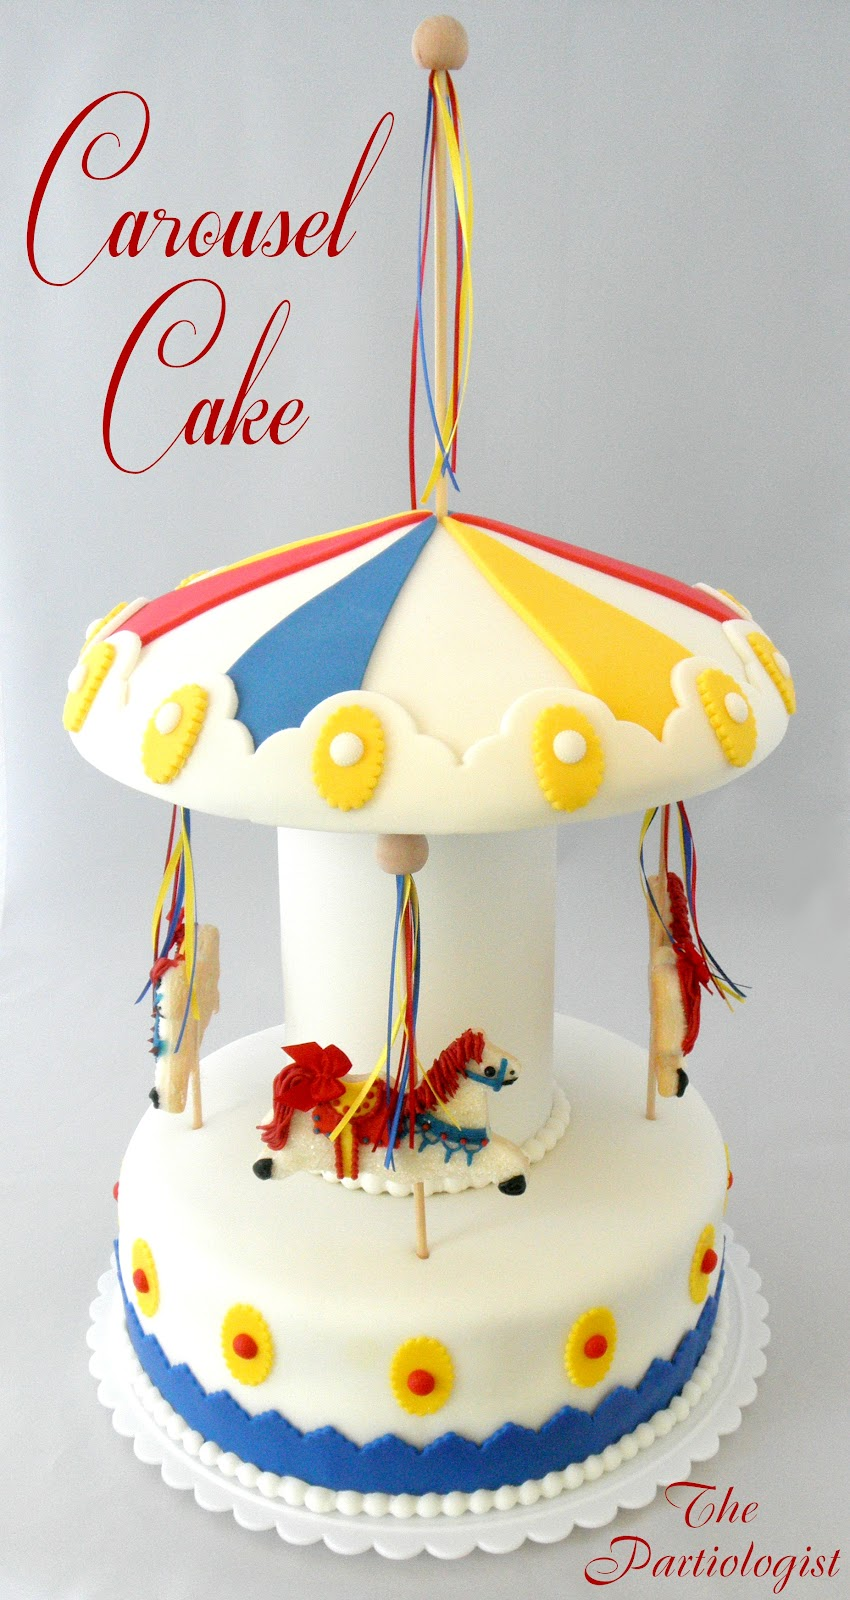 The Partiologist Carousel Cake